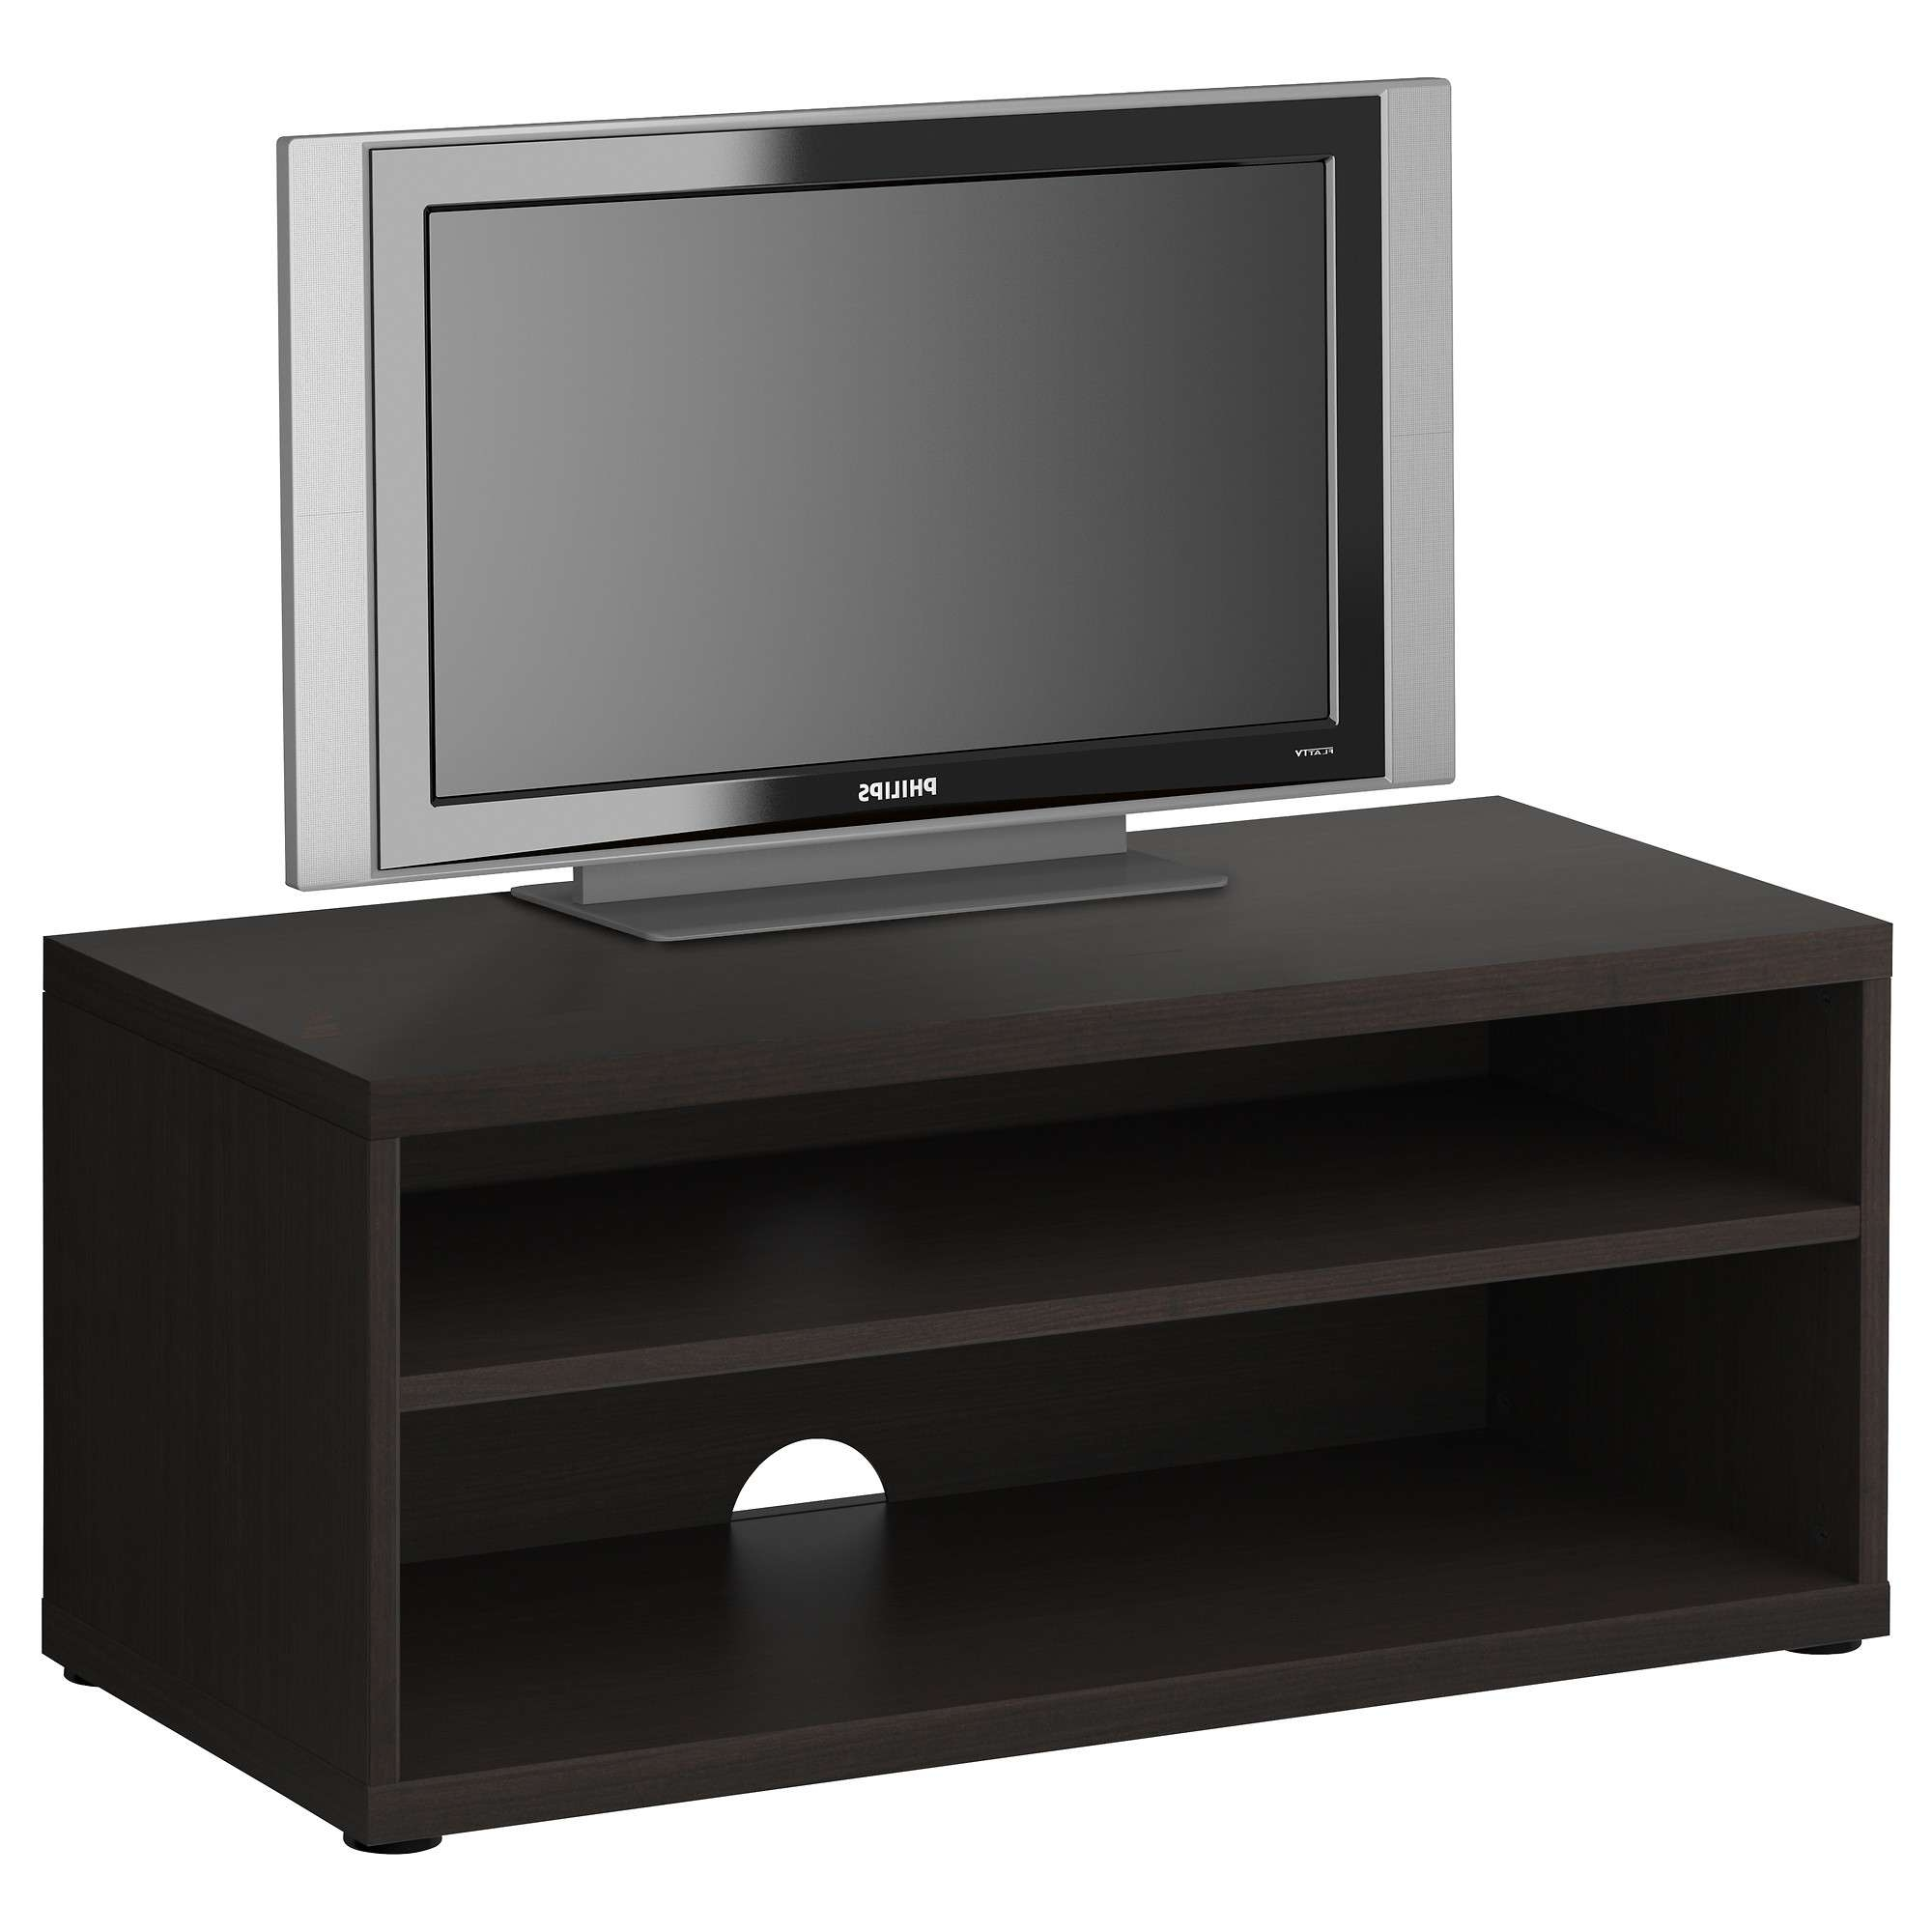 Mosjö Tv Bench Black Brown 90X40X38 Cm – Ikea With Tv Stands At Ikea (View 8 of 15)